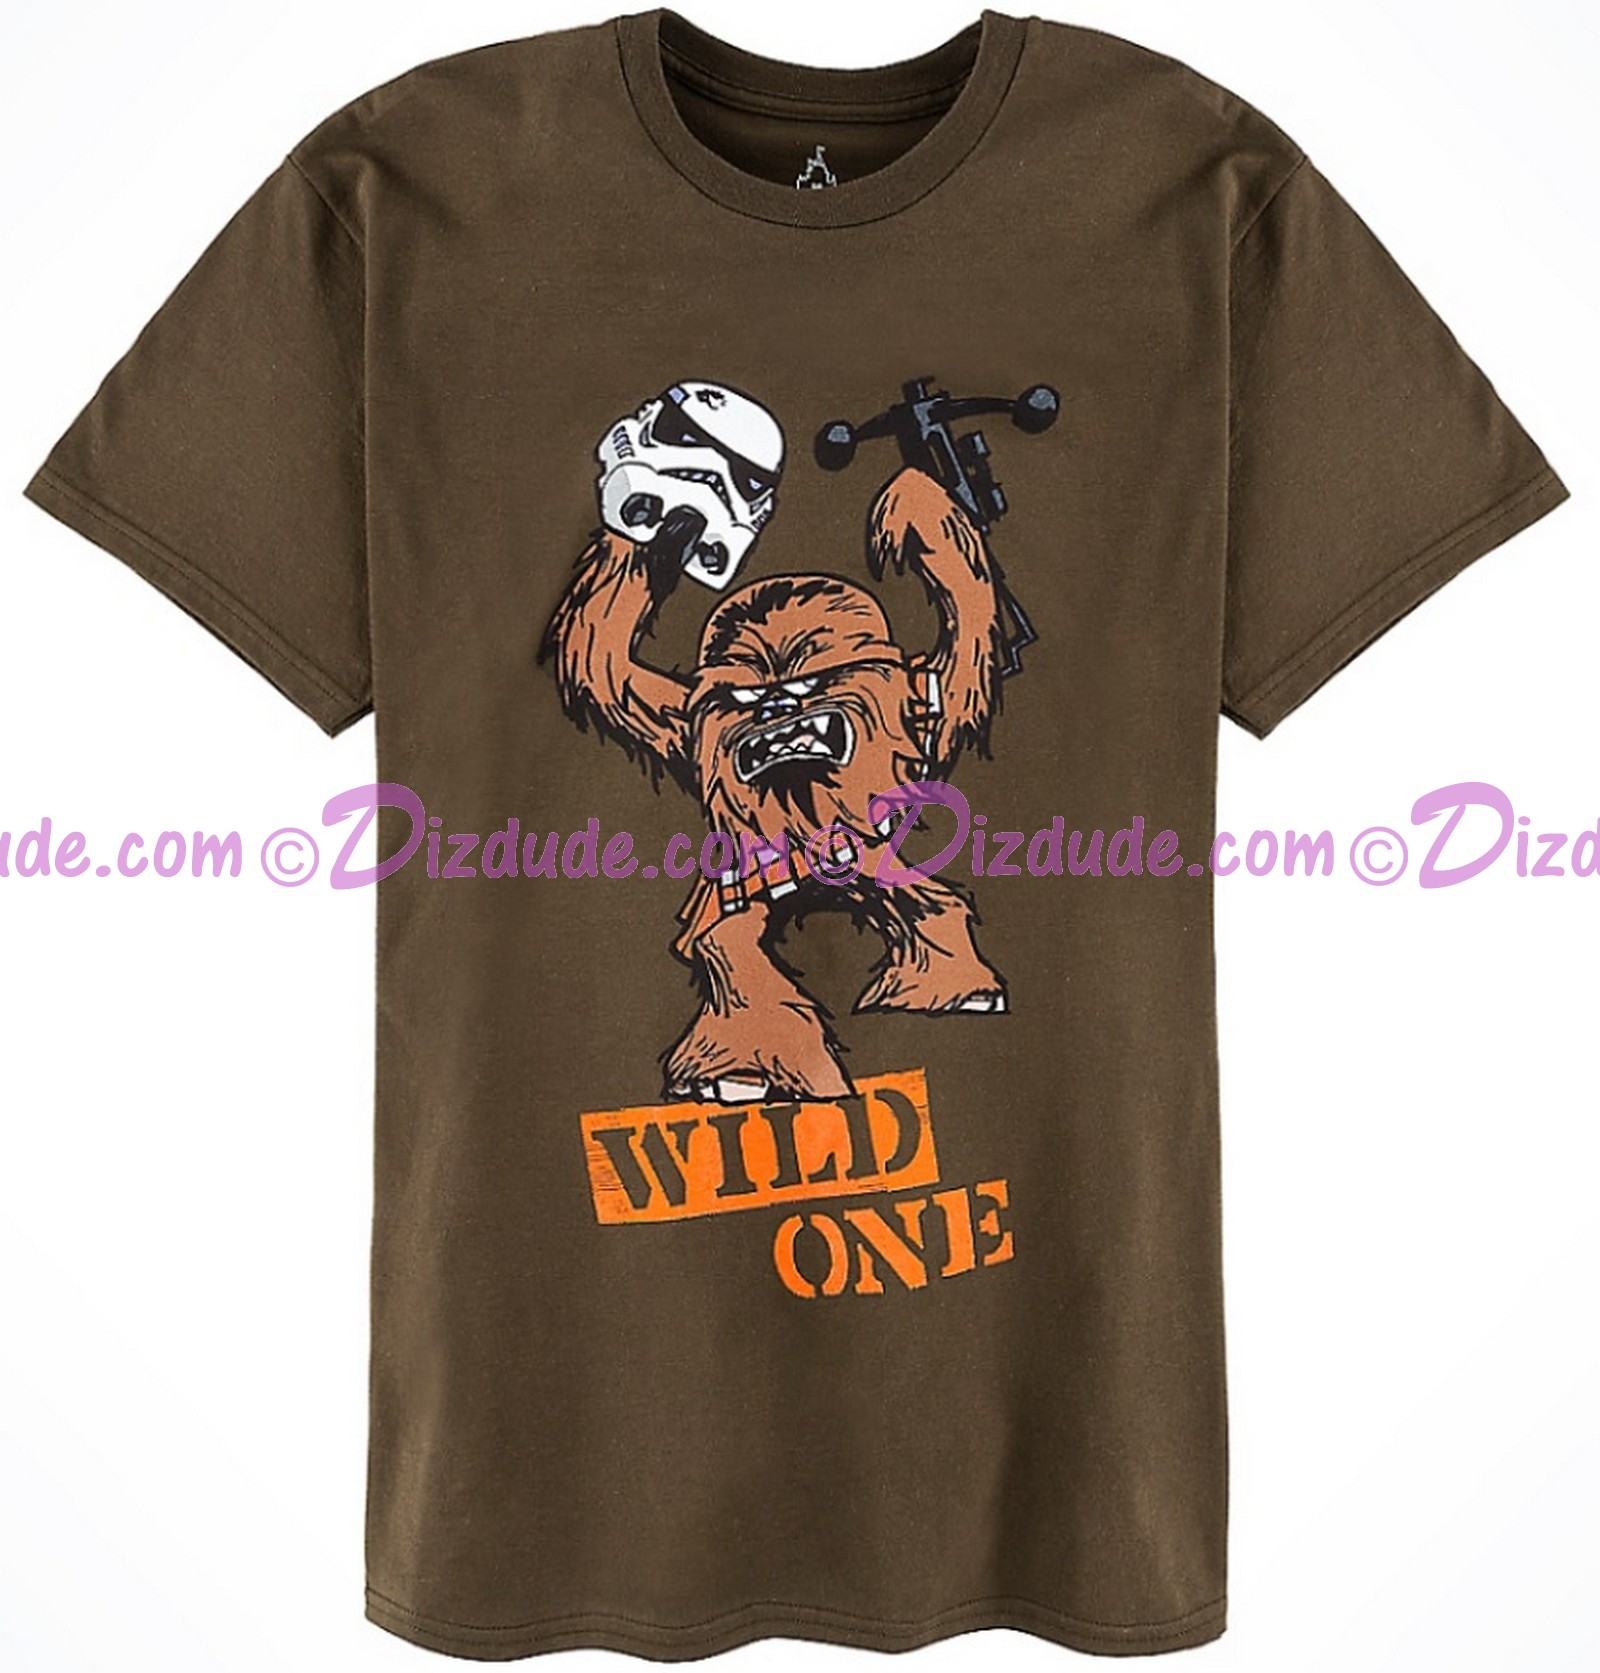 Chewbacca Wild One Adult T-Shirt (Tshirt, T shirt or Tee) - Disney Star Wars © Dizdude.com